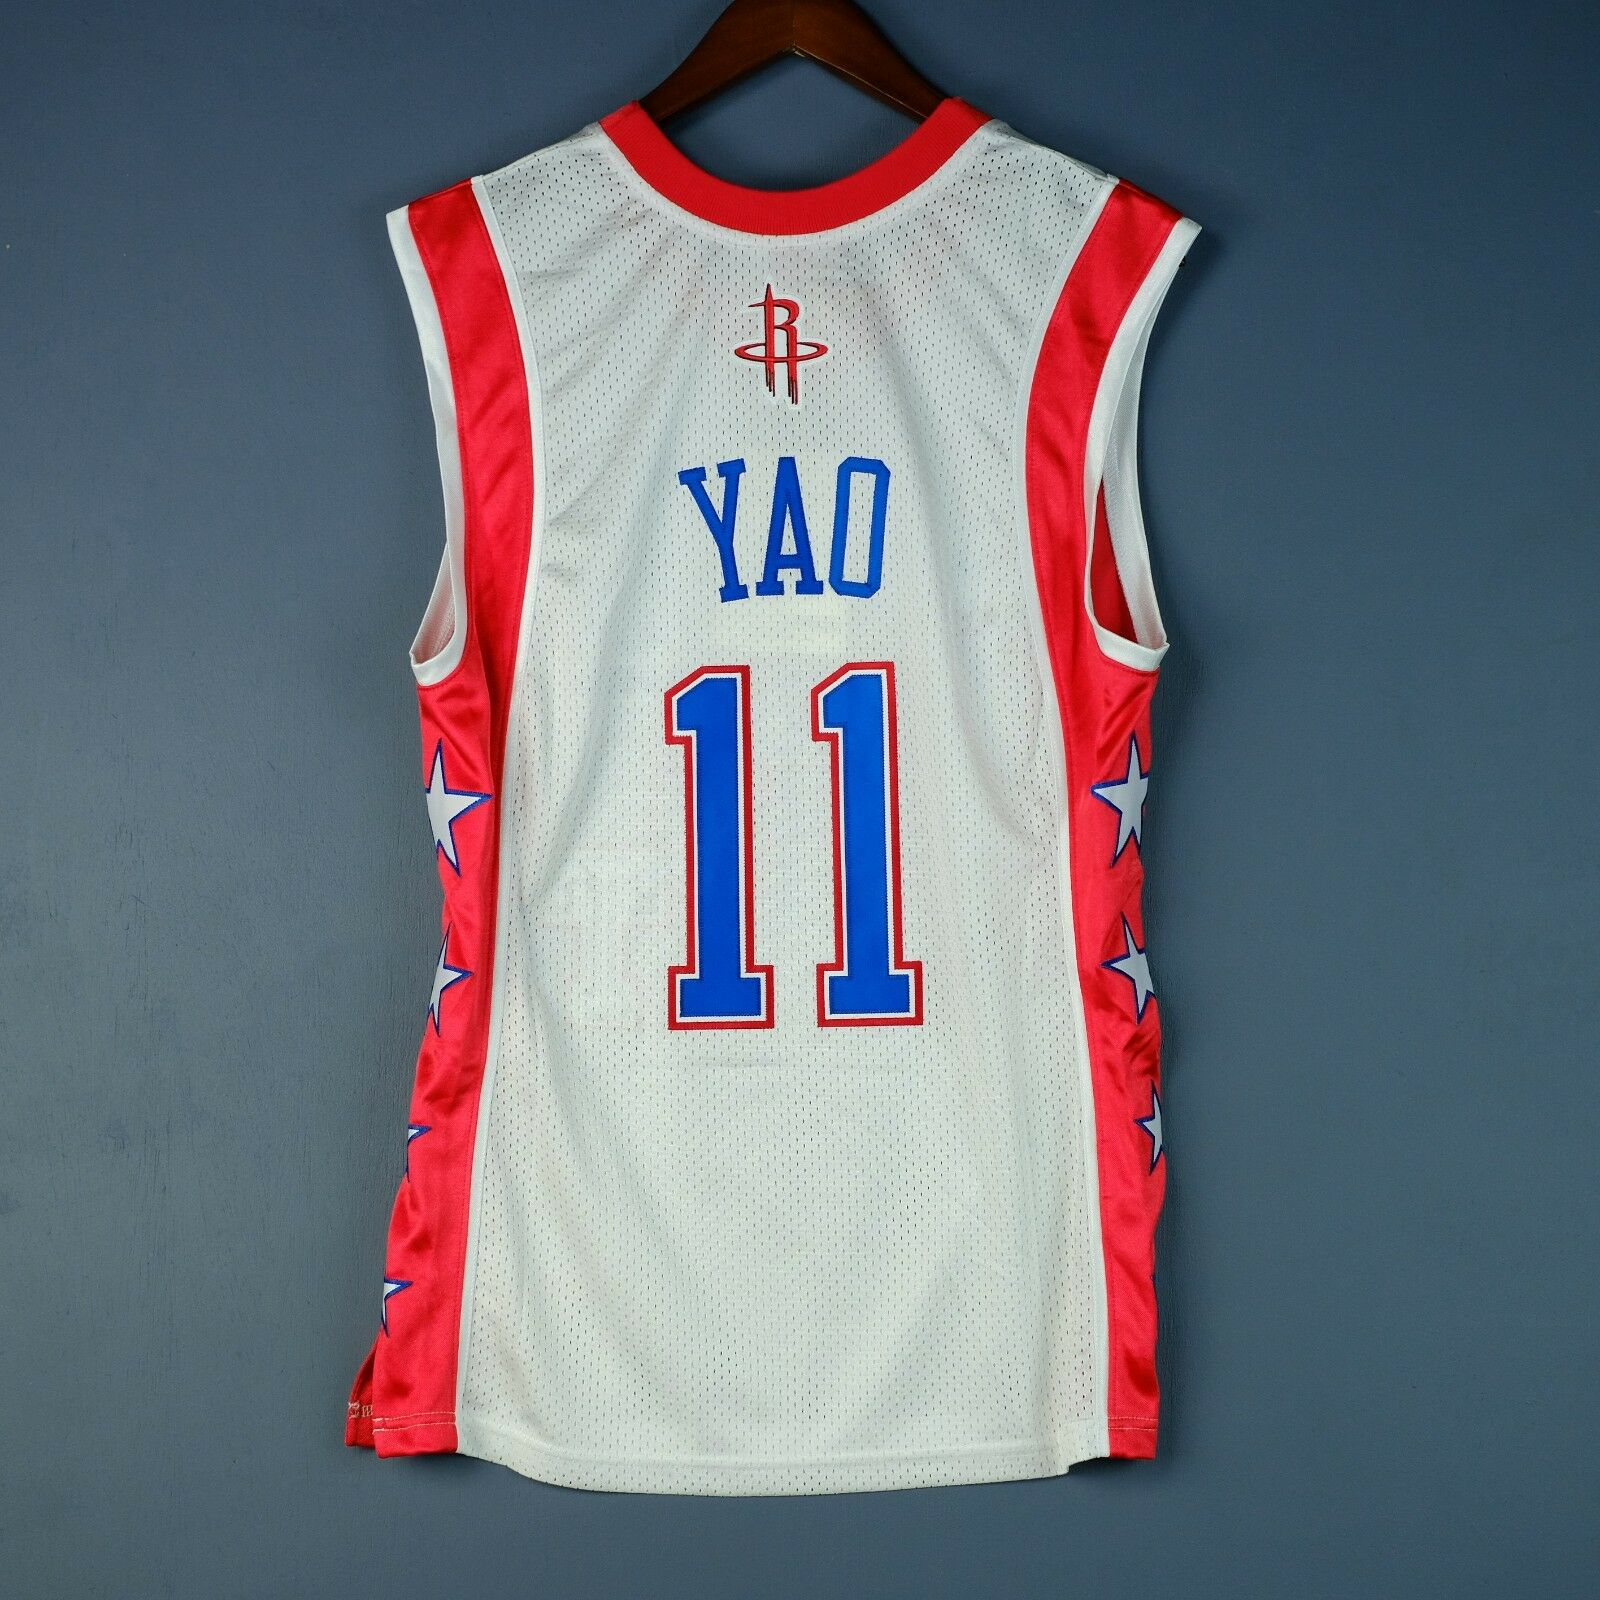 100% 100% 100% Authentisch Yao Ming Mitchell & Ness 04 All Star Trikot Größe Herren 36 S S c6176c